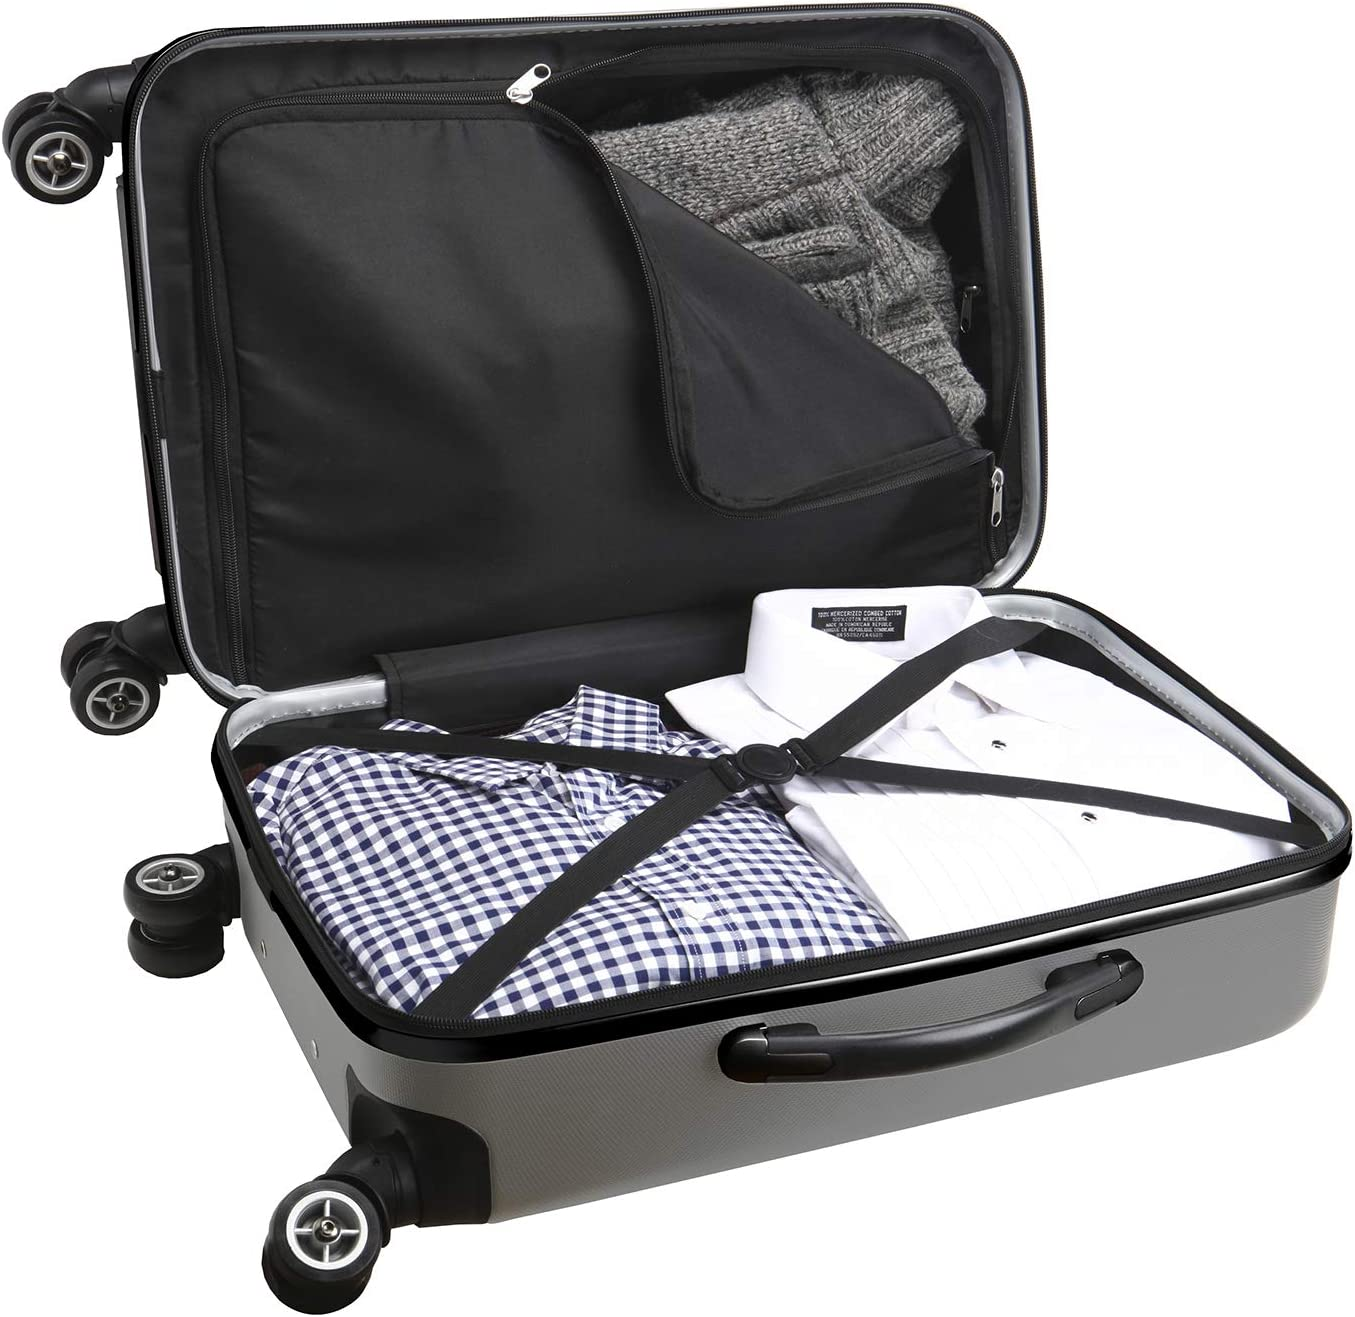 Denco X-Games United States Army Carry-On Hardcase Luggage Spinner